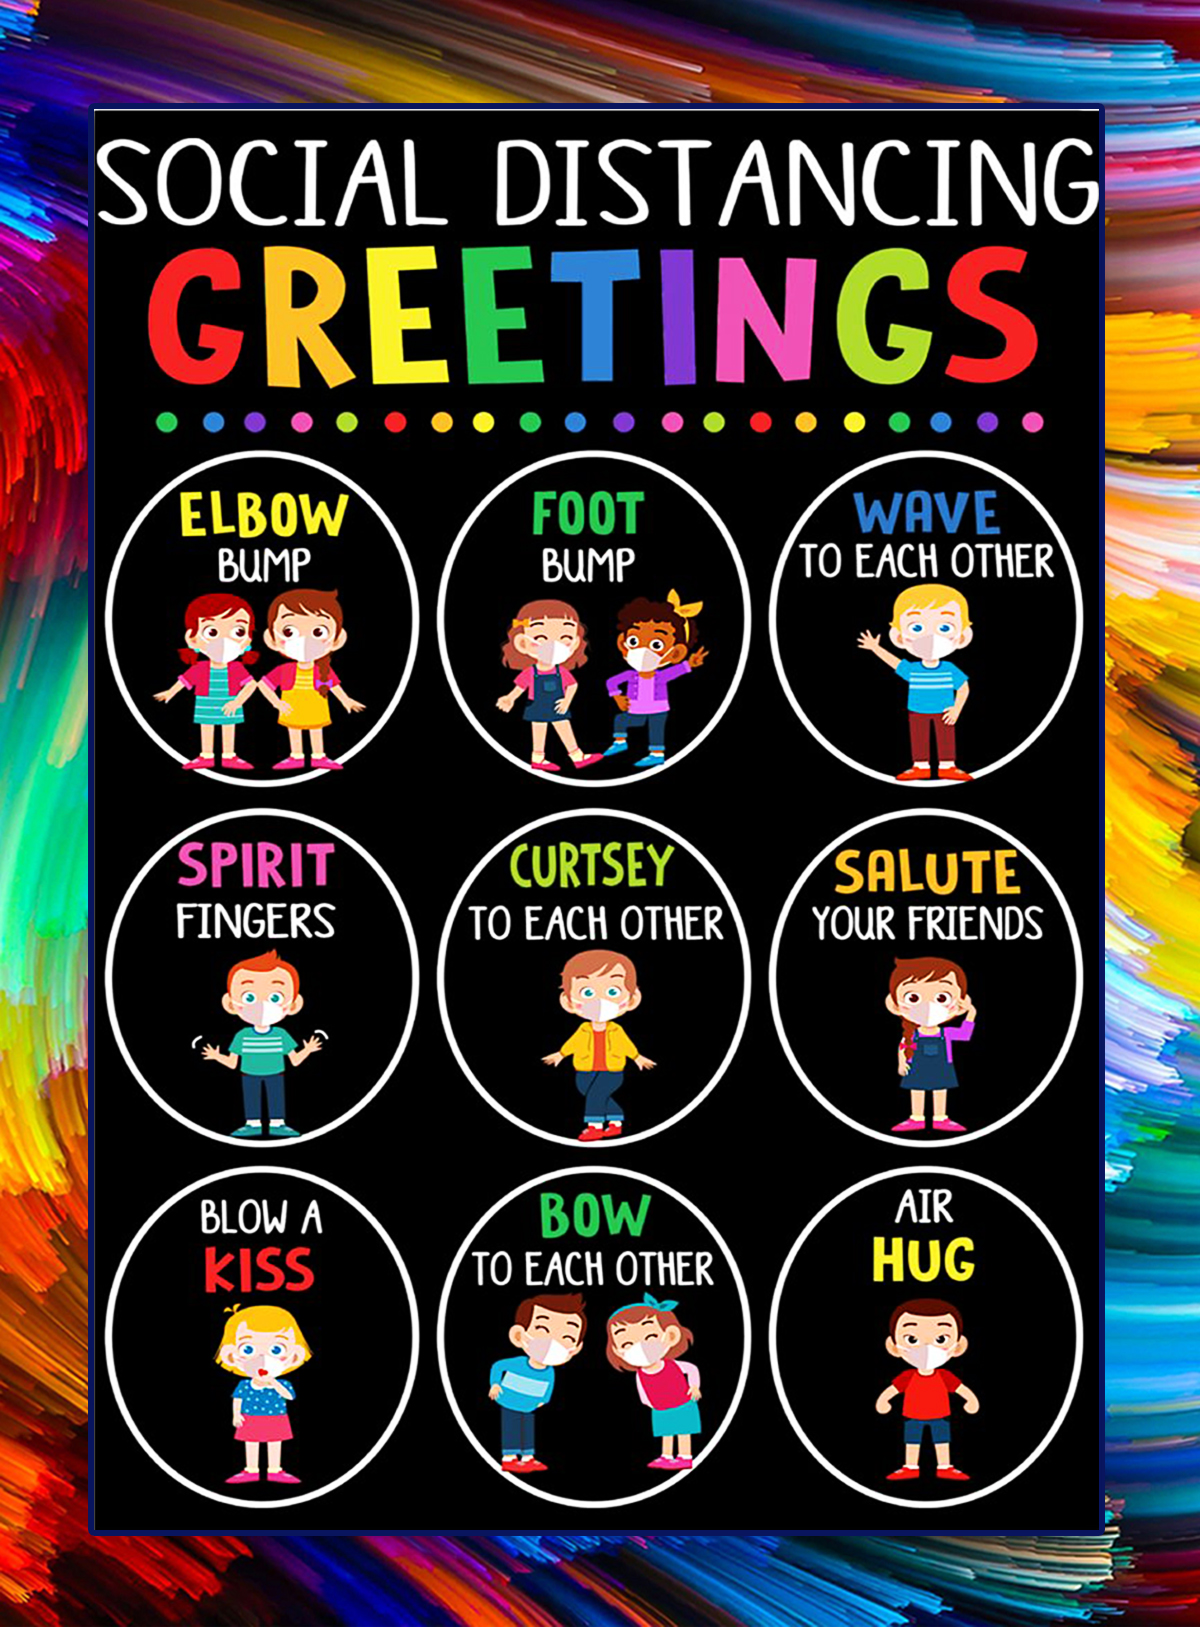 Social distancing greetings classroom poster